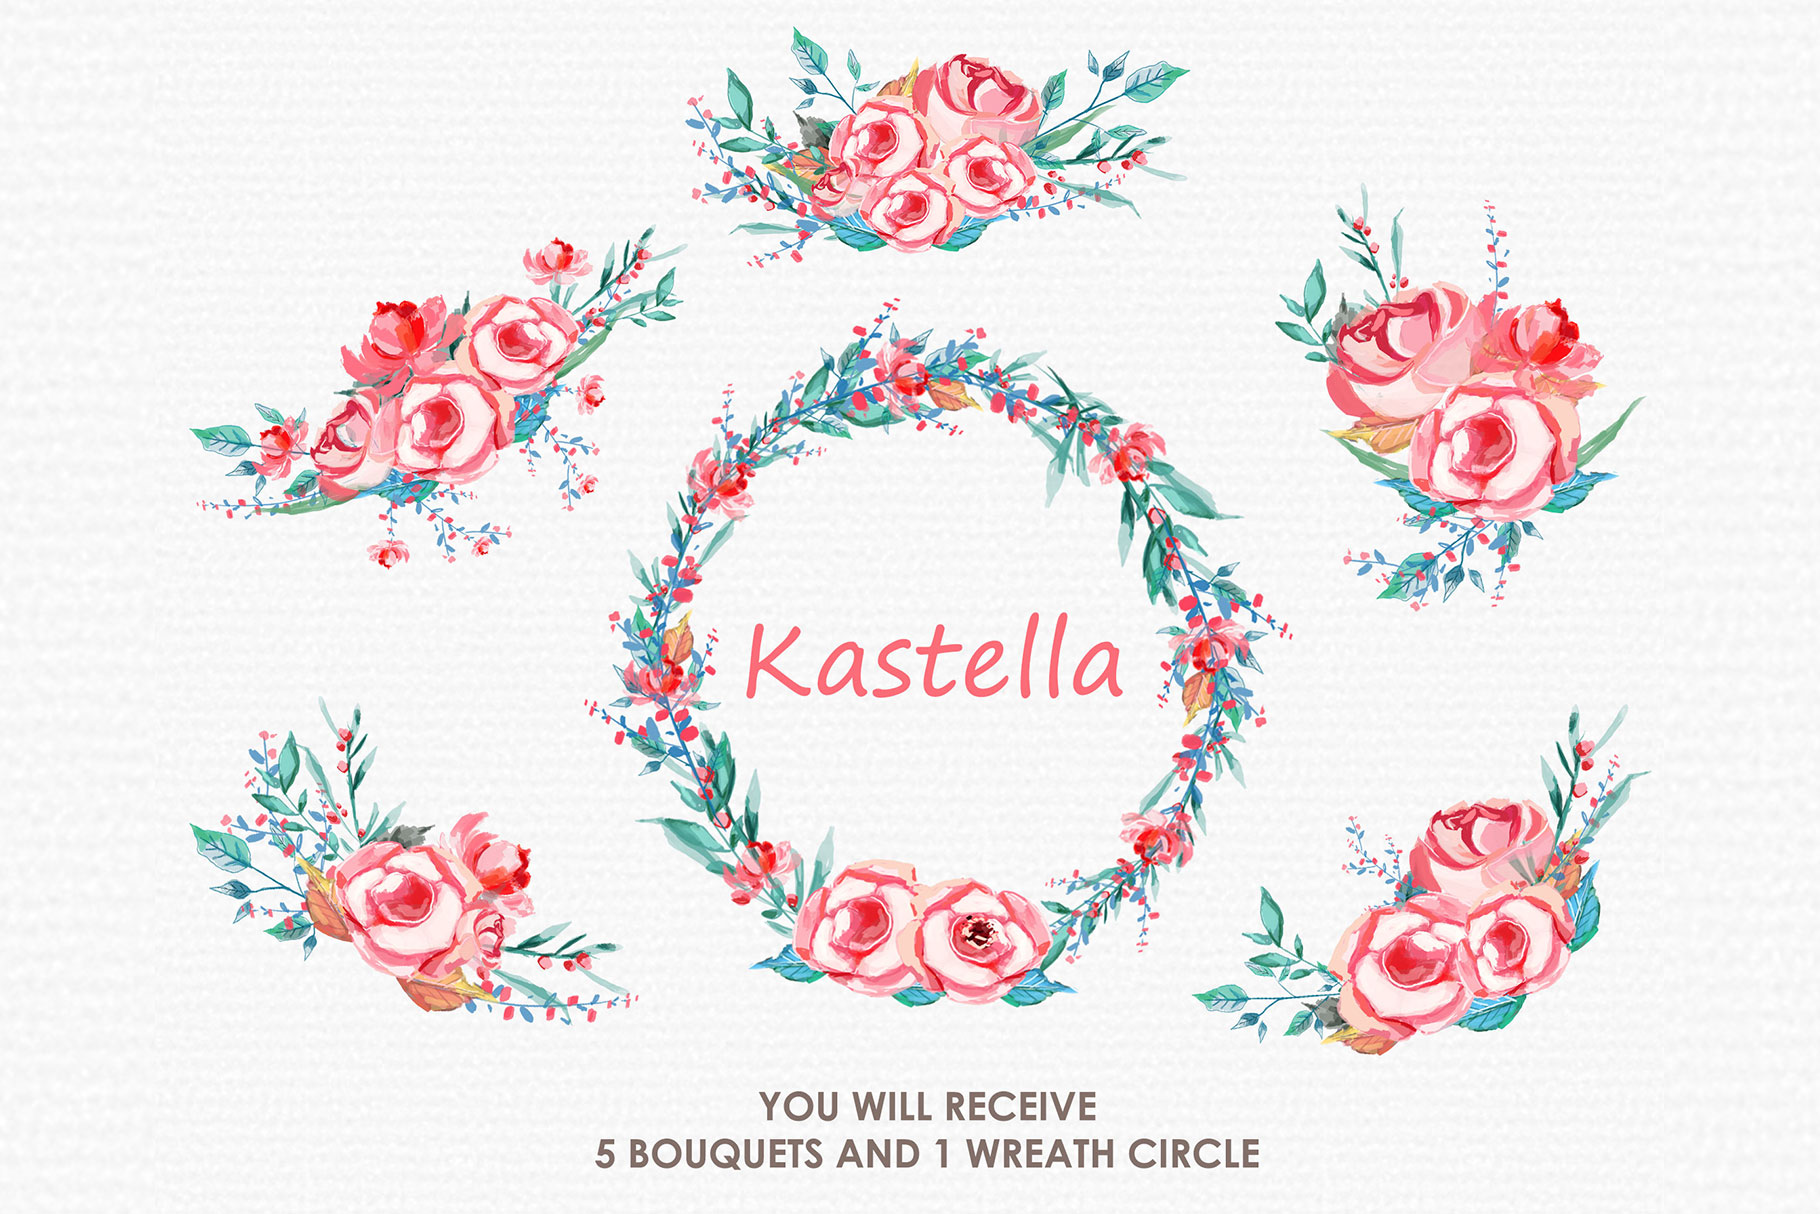 Kastella - Digital Watercolor Floral Flower Style Clipart example image 3